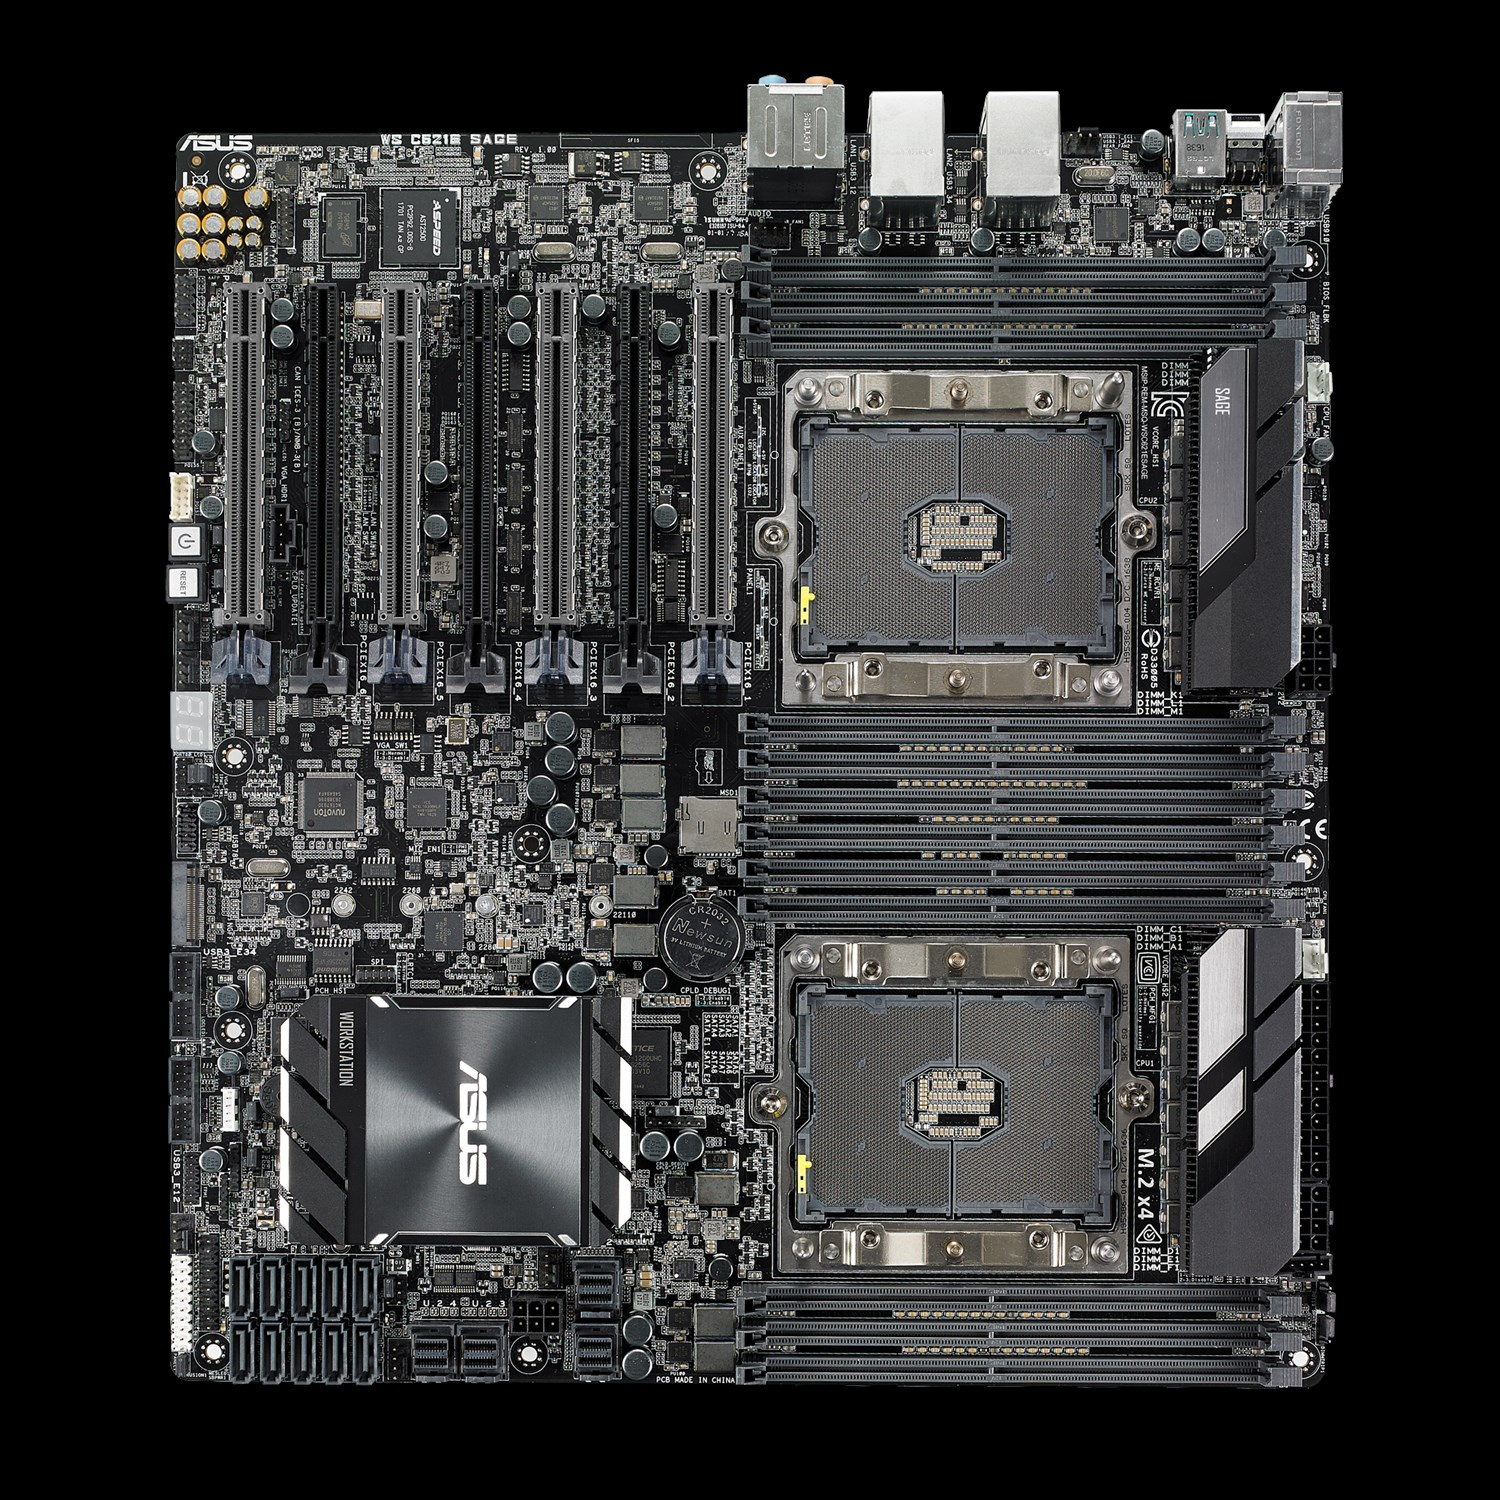 ASUS Intros WS C621E SAGE Motherboard With Dual Xeon CPU Support